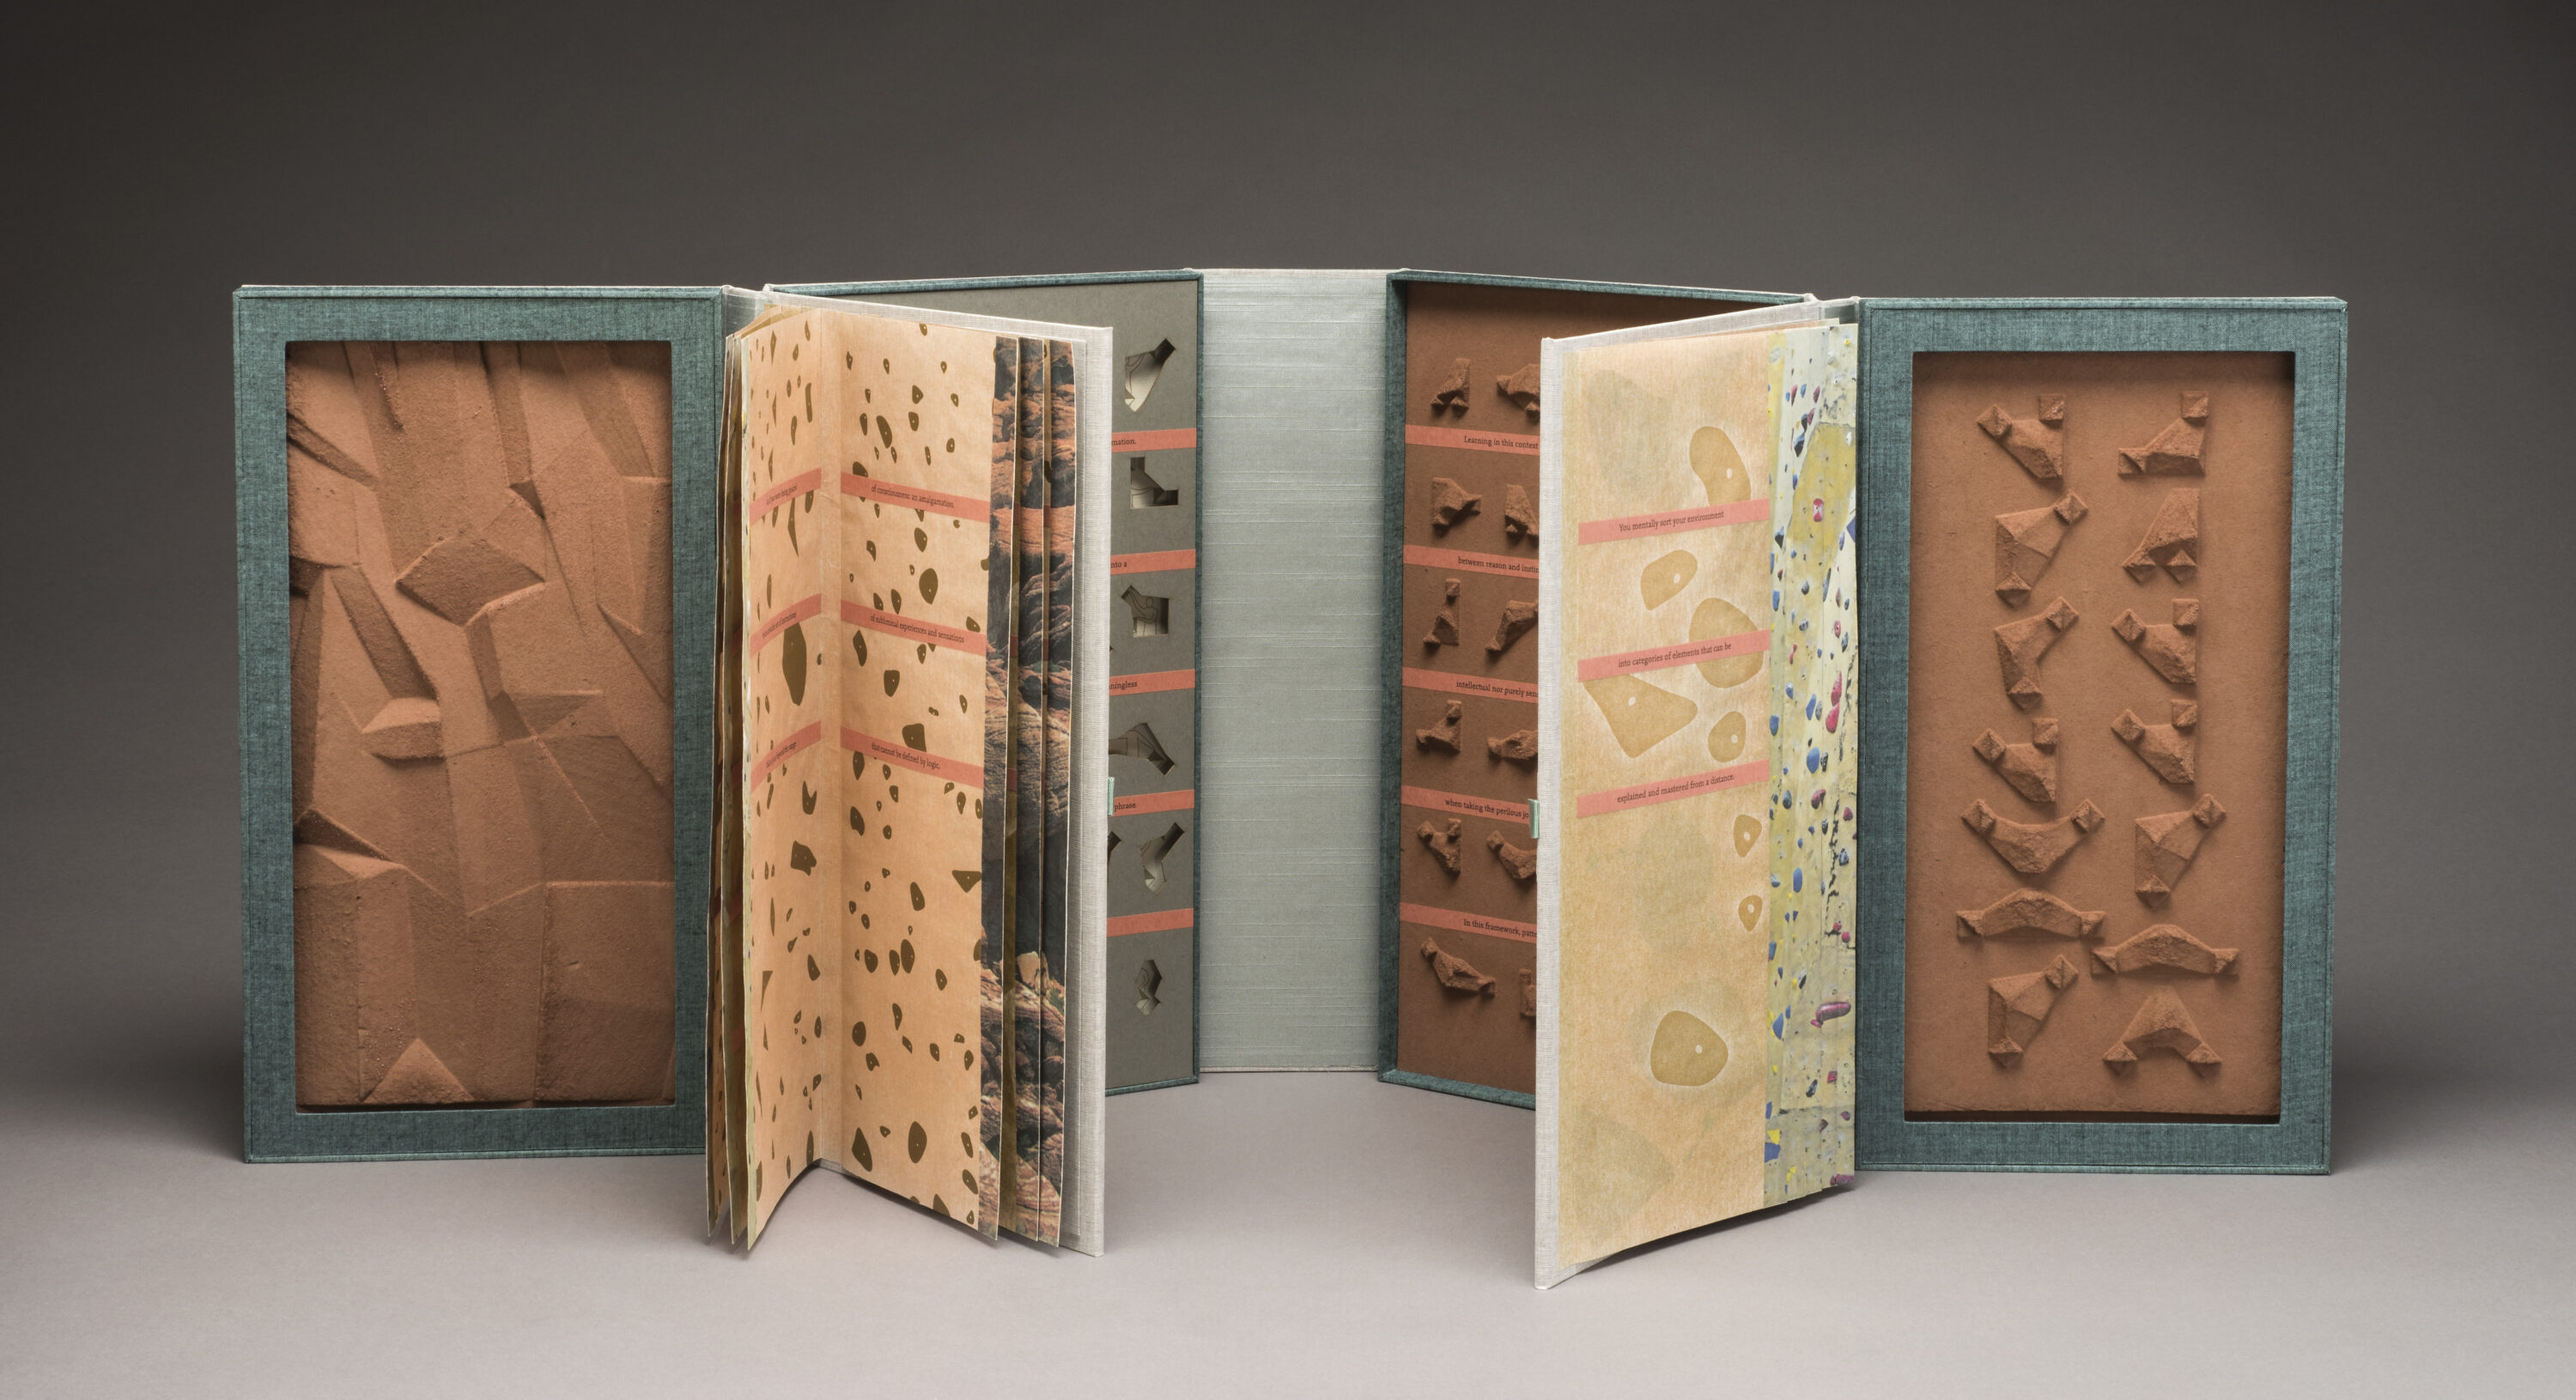 An open artist's book resembling two open books connected end to end. The four inner cover panels feature small sculpted brown shapes, small indented shapes, and a rocky-looking panel. The two groups of pages feature different patterns that resemble rock climbing walls.